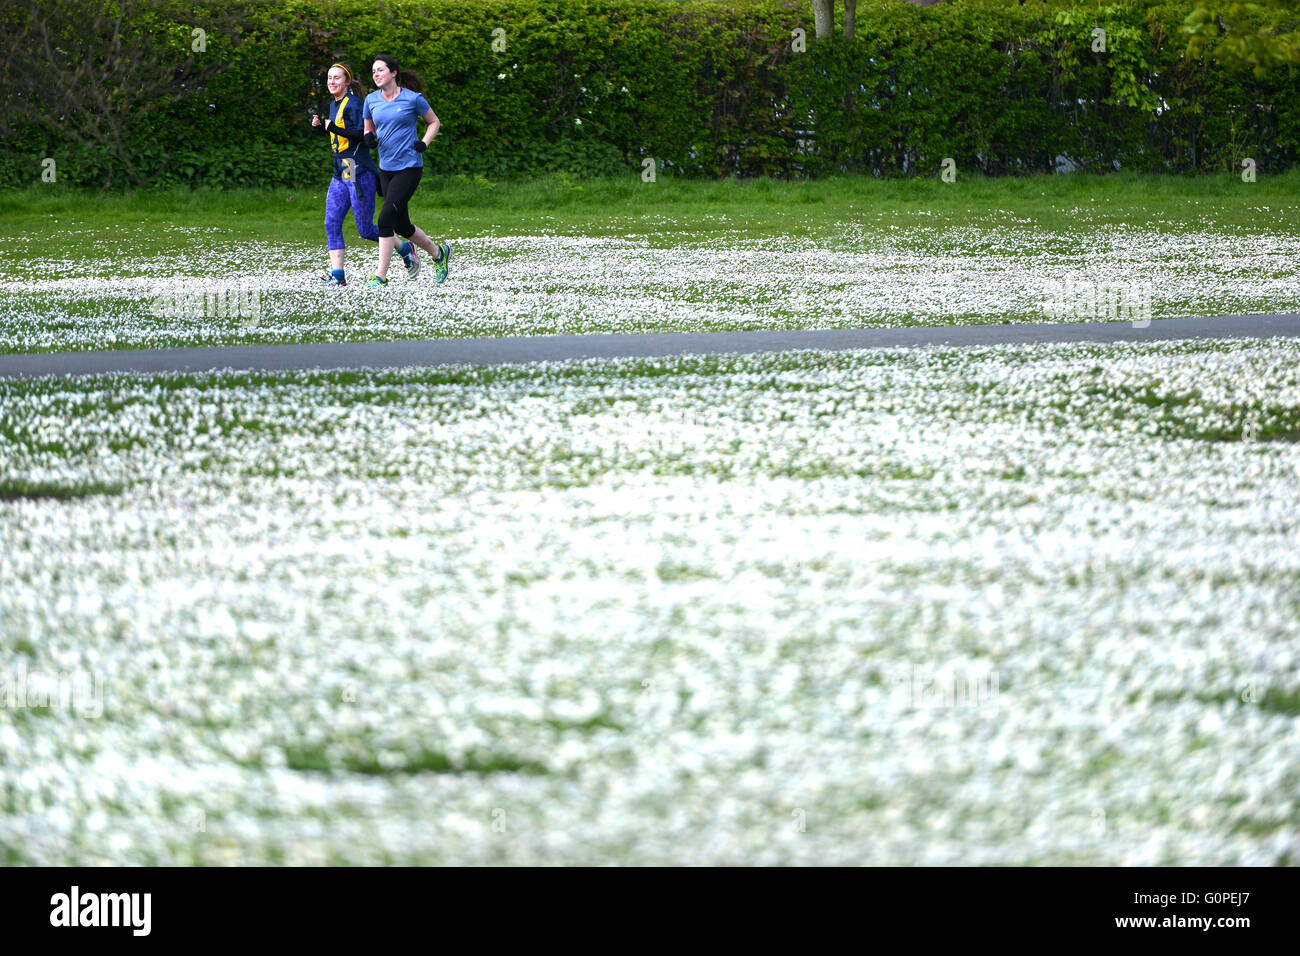 Regents Park, London, UK. 2-May-2016. Not snow but a blanket of daisies covers the ground in Regents Park. © Peter Stock Photo